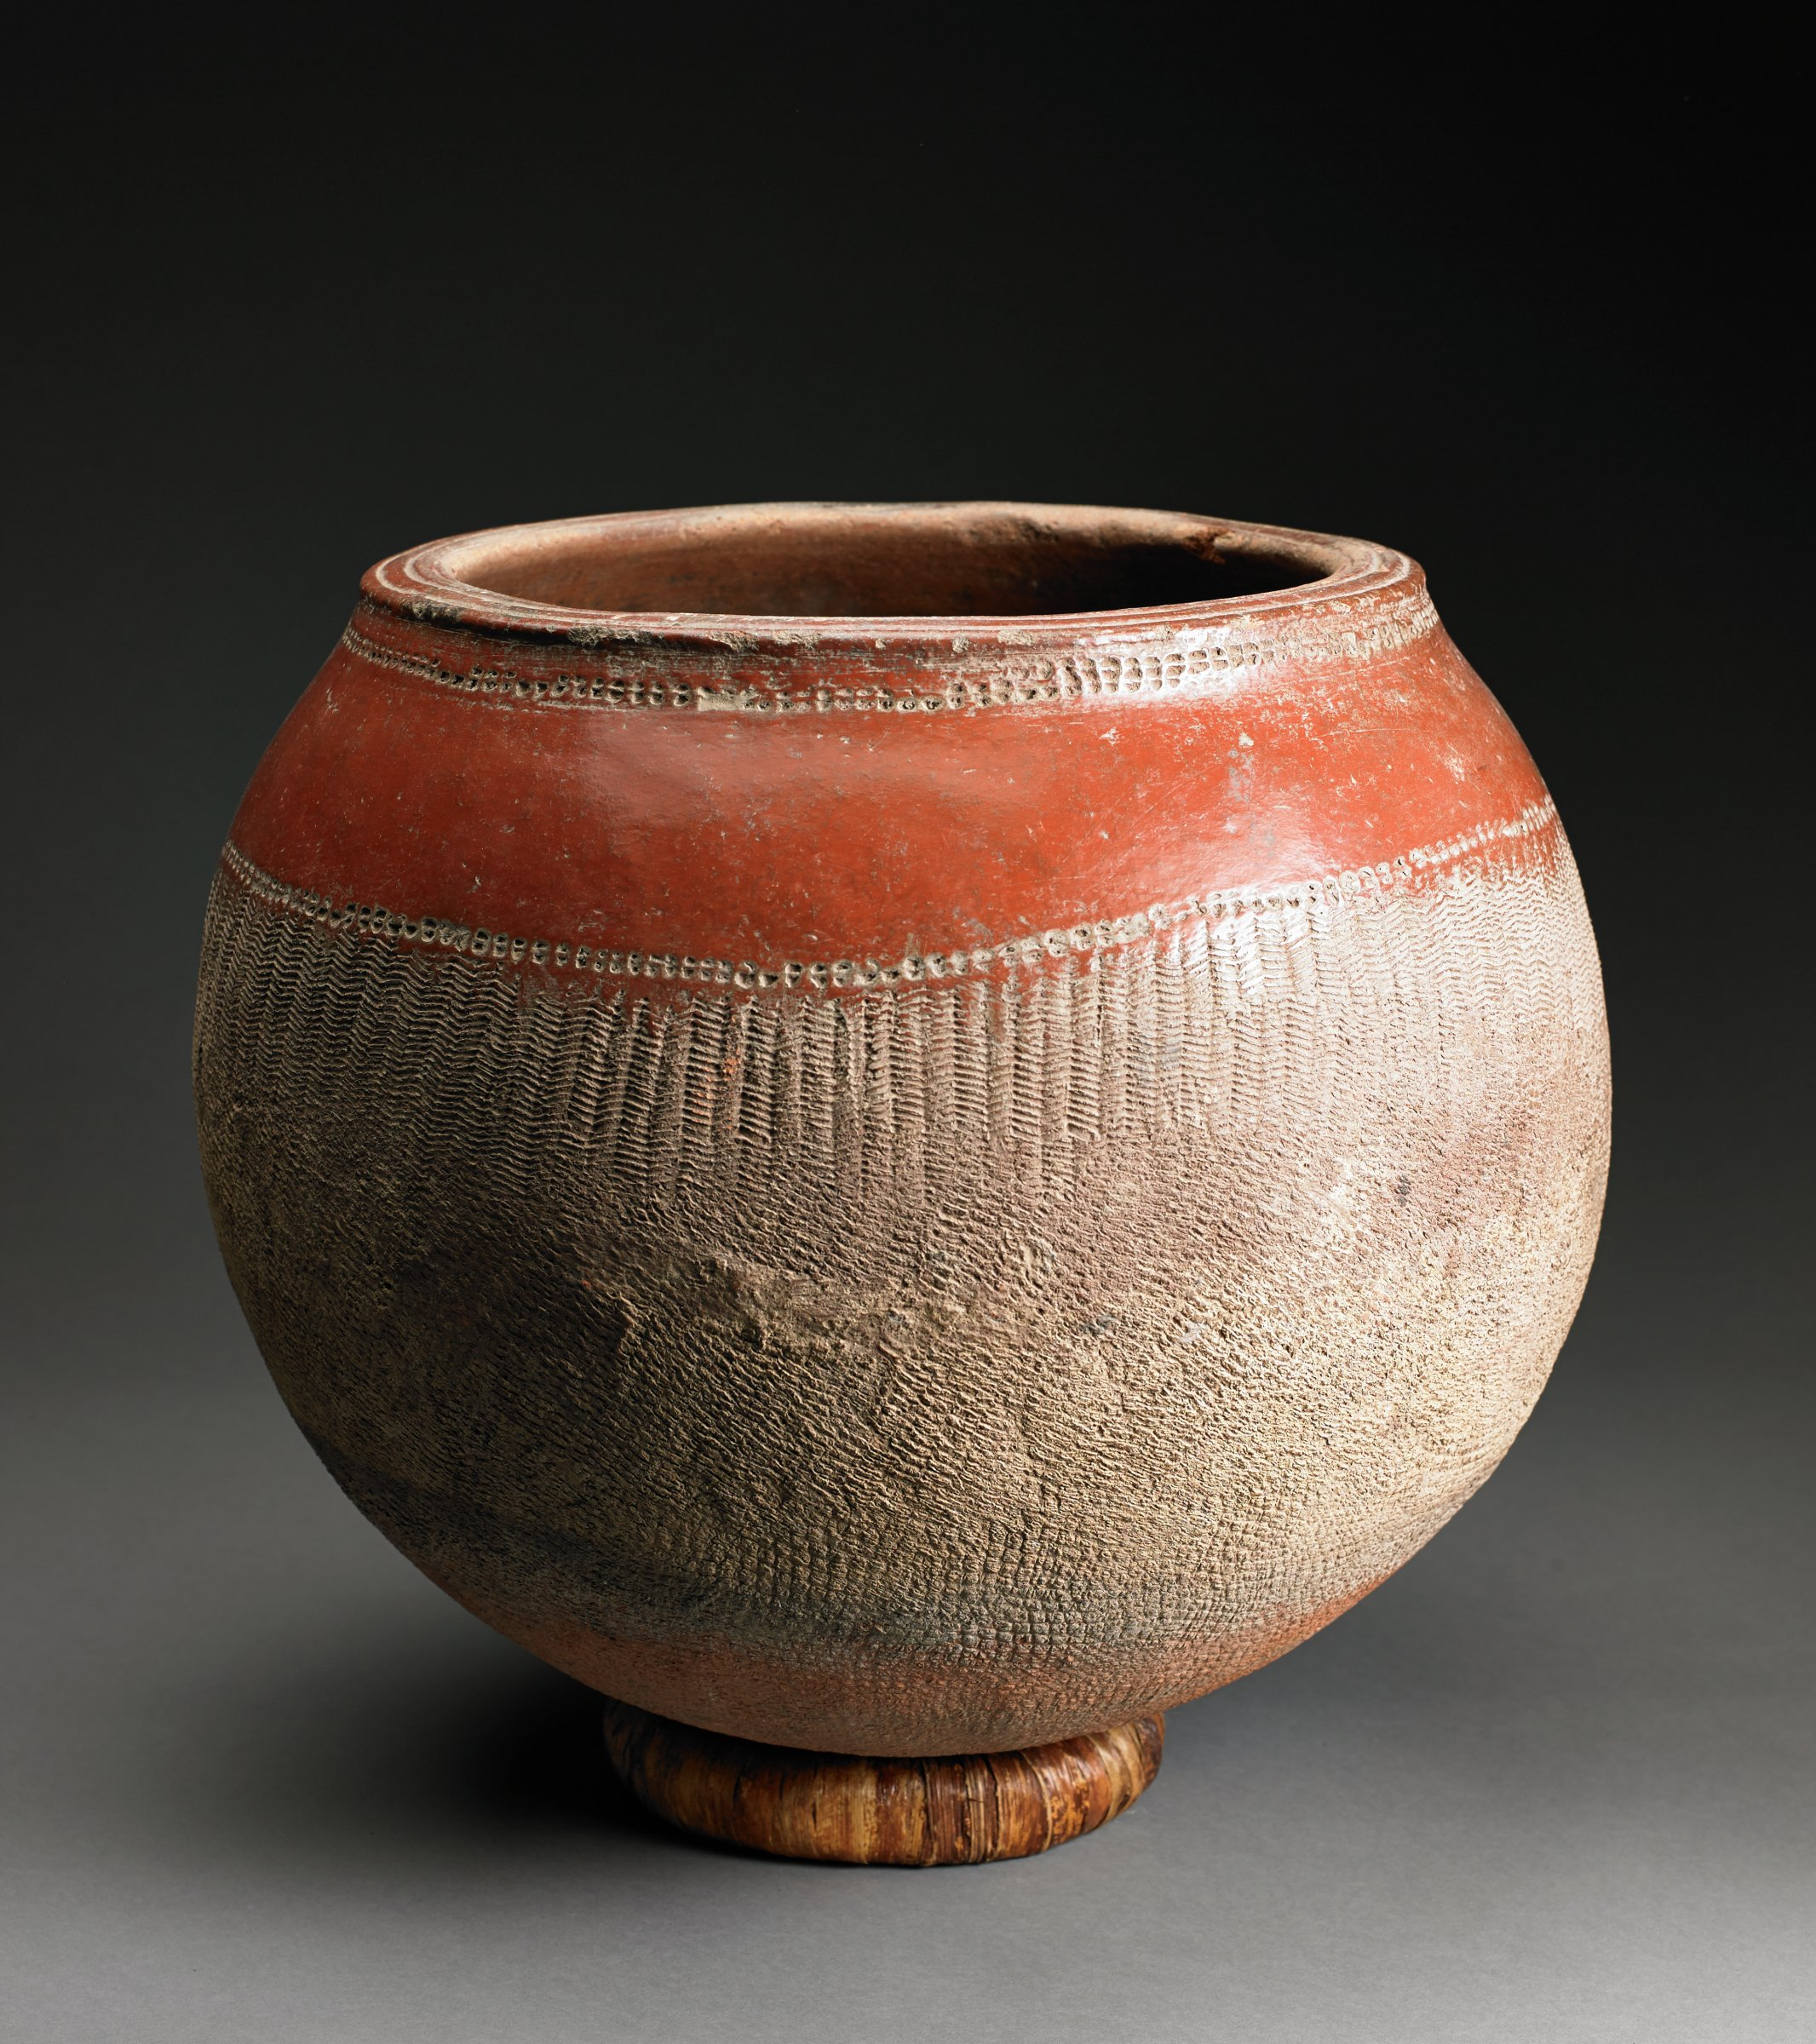 Round, red-orange vessel has wide mouth; shoulder has glossy surface and bottom two-thirds has matte, buff-colored surface with faint roulette texture.